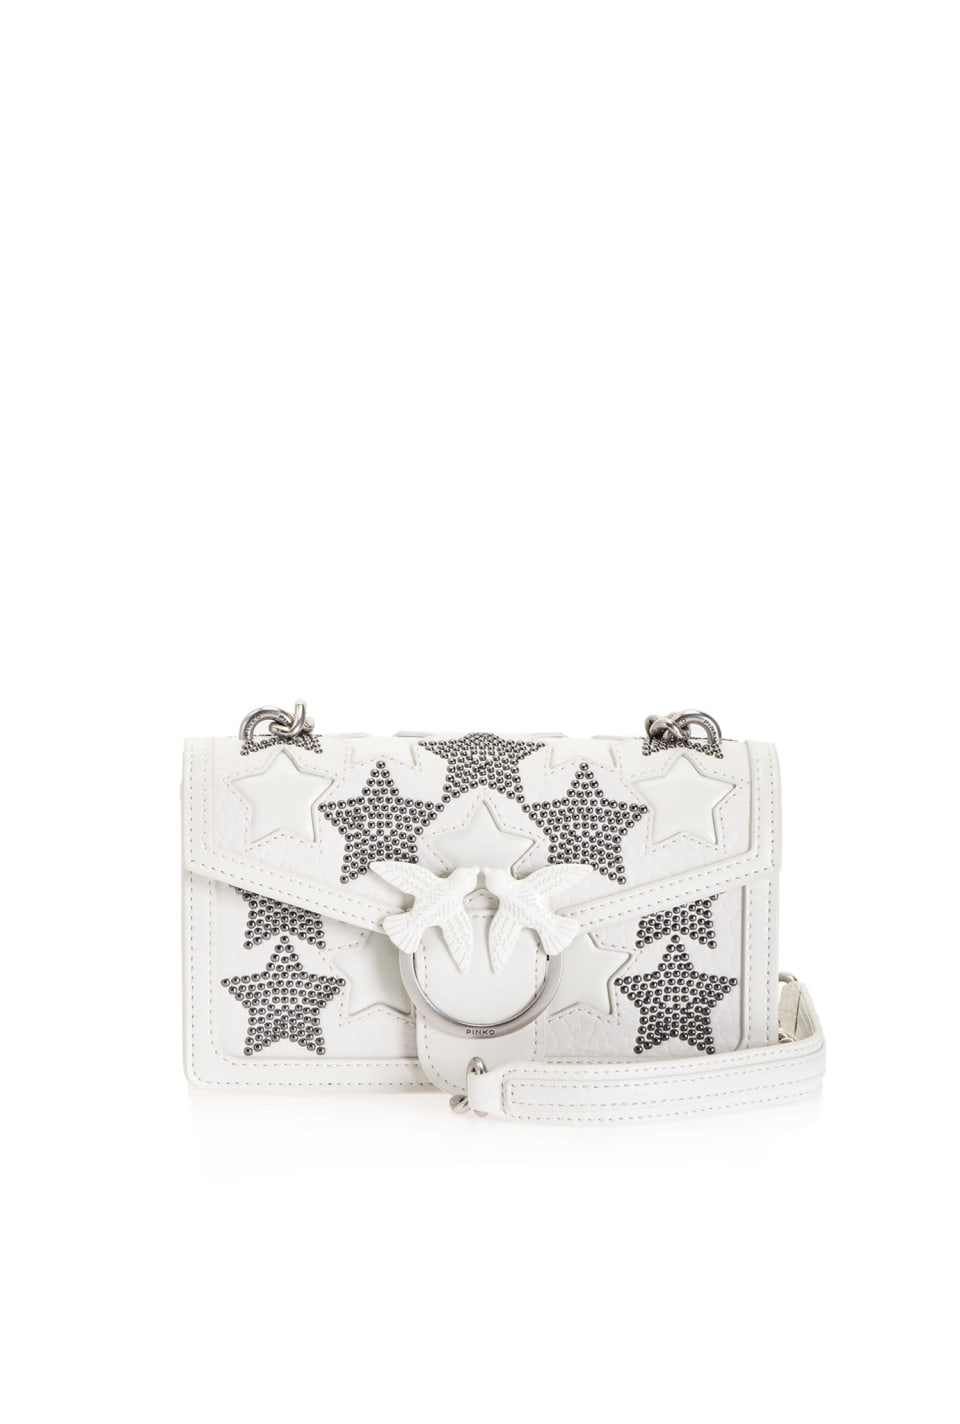 Starry Sky Mini Love Bag with studs